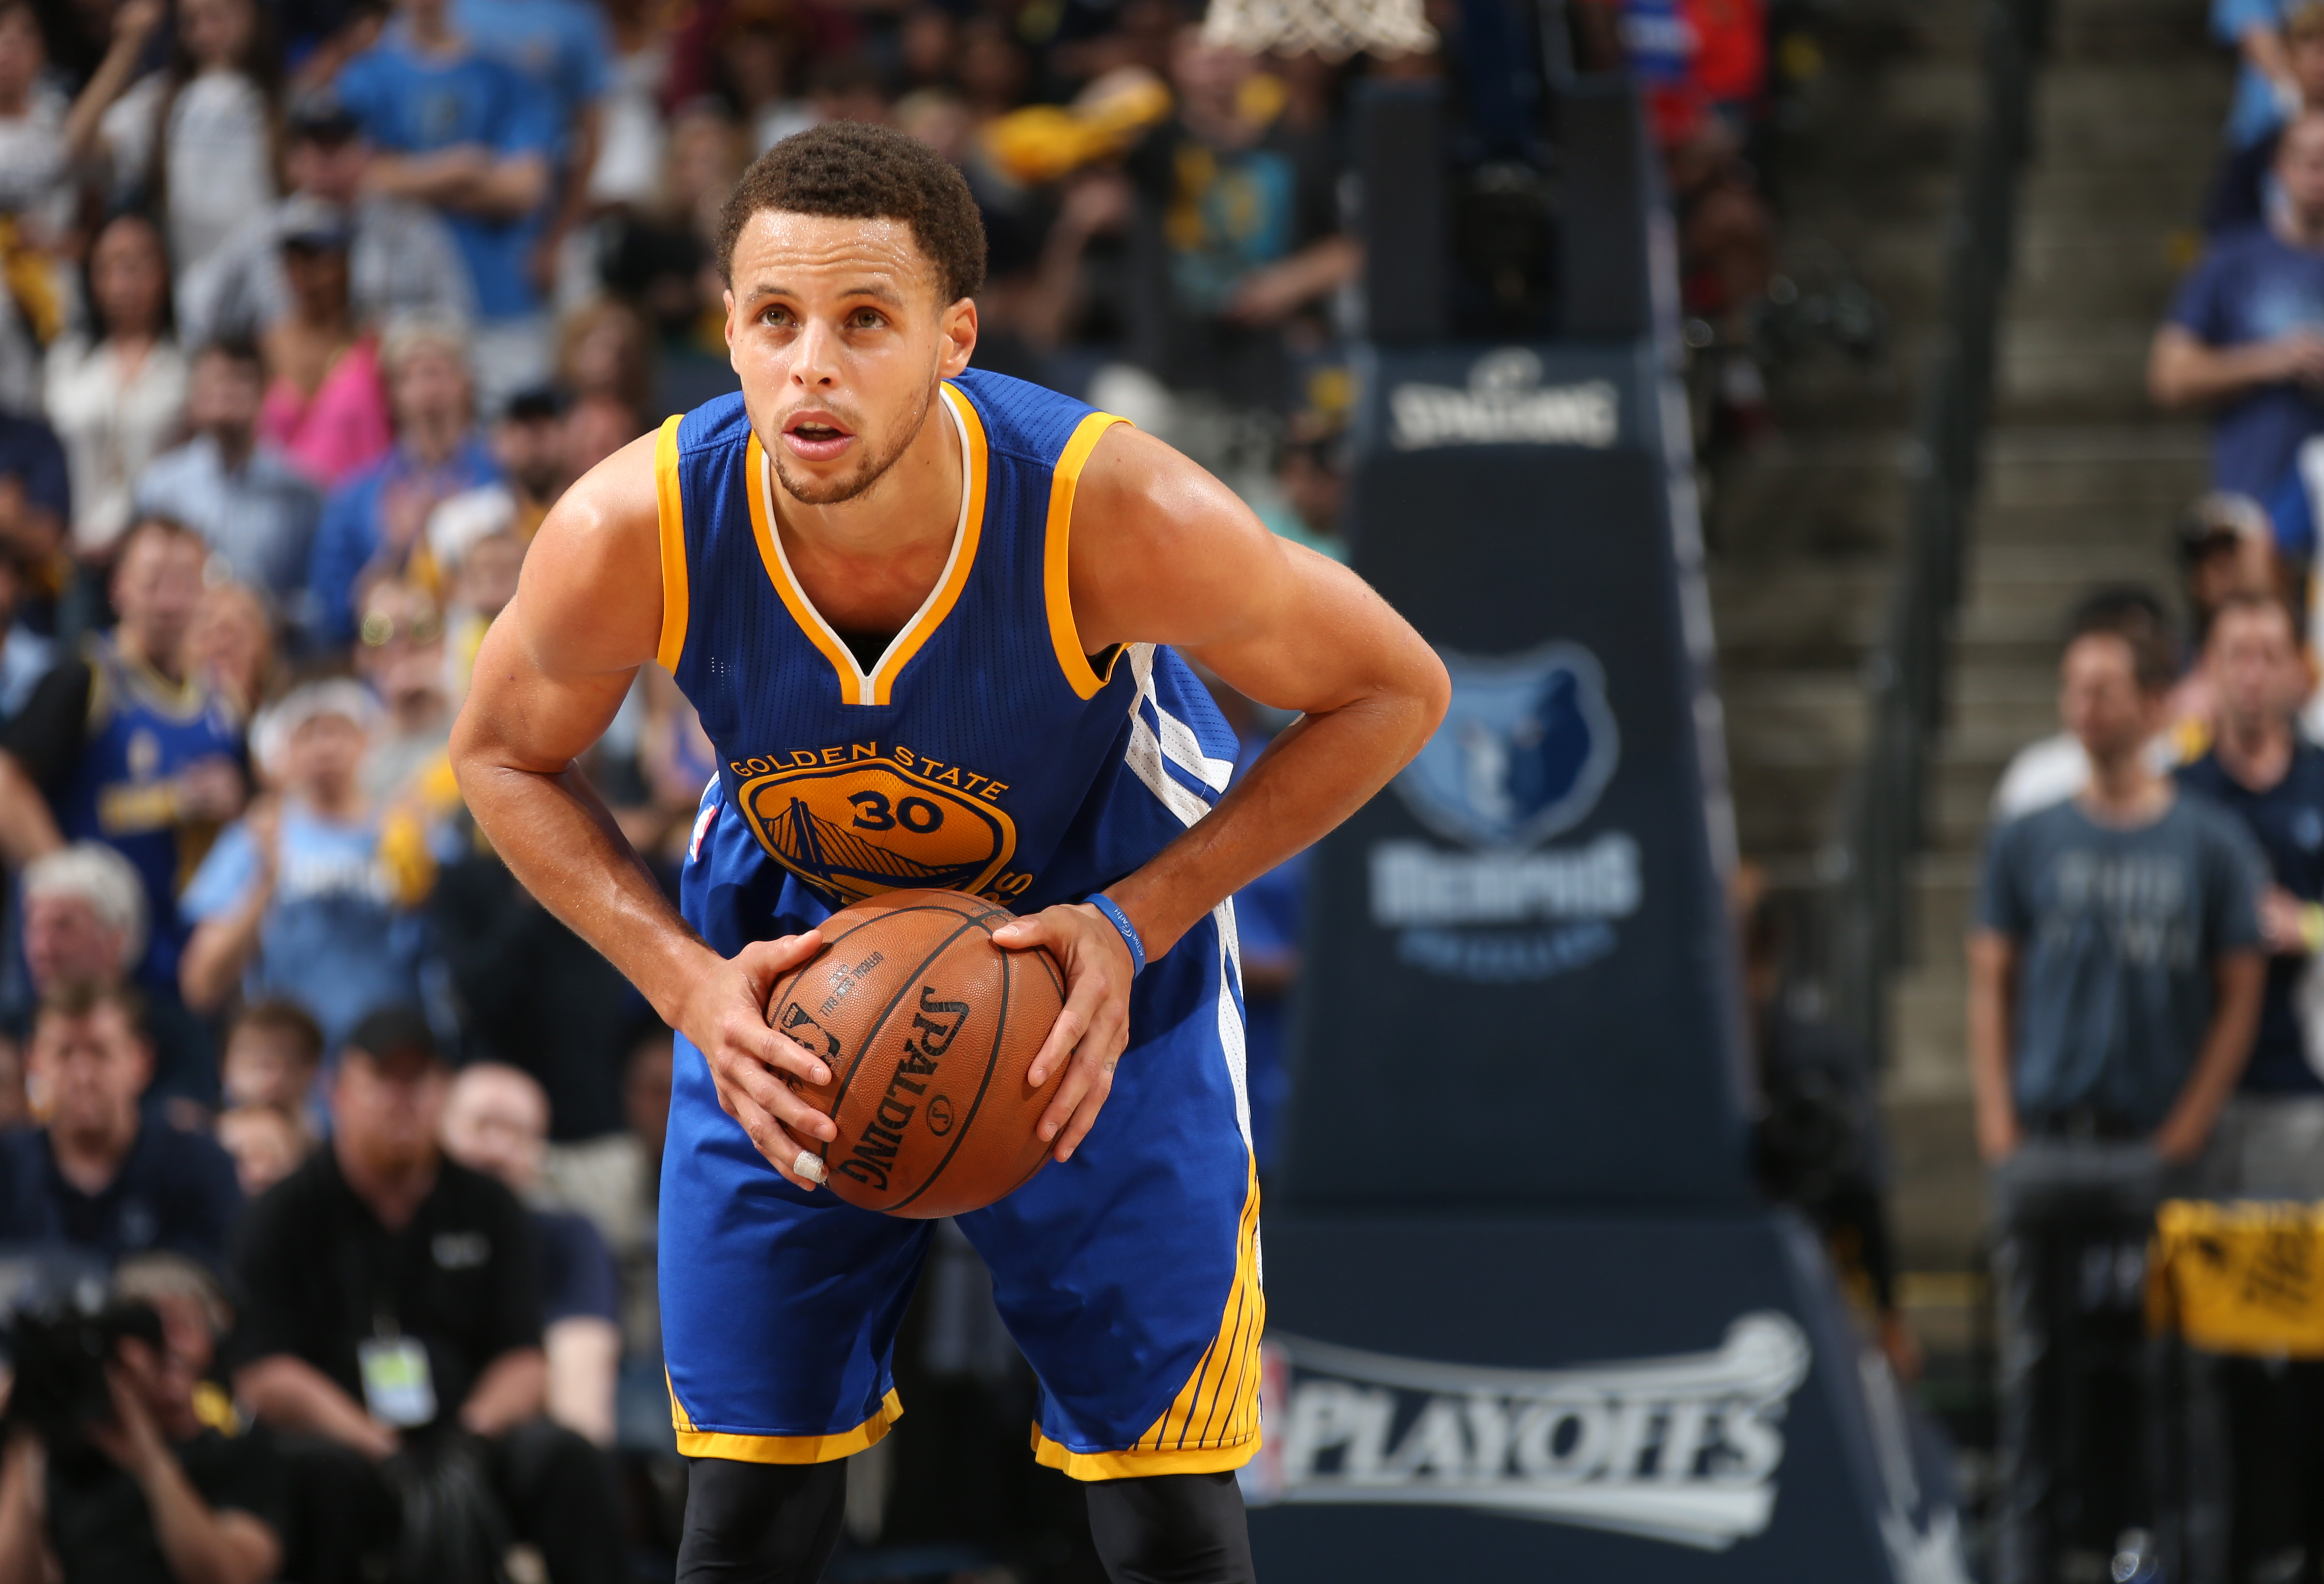 MEMPHIS, TN - MAY 15:  Stephen Curry #30 of the Golden State Warriors with the ball against the Memphis Grizzlies during Game Six of the Western Conference Semifinals of the NBA Playoffs at FedExForum on May 15, 2015 in Memphis, Tennessee. (Photo by Joe M